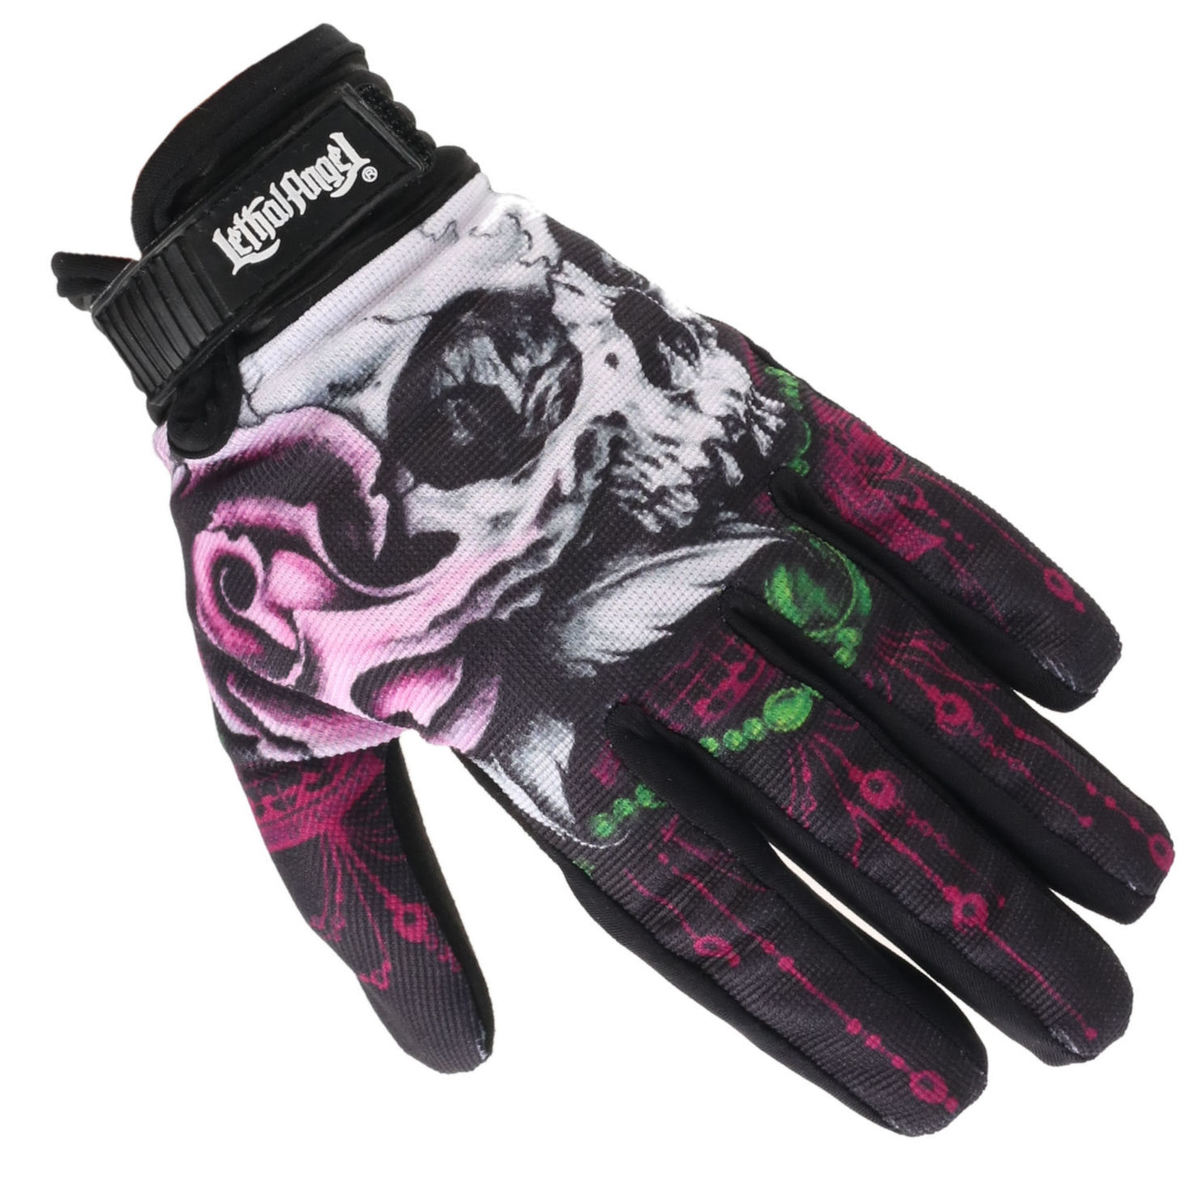 rukavice LETHAL THREAT - FLORAL SKULL - GL15006 S